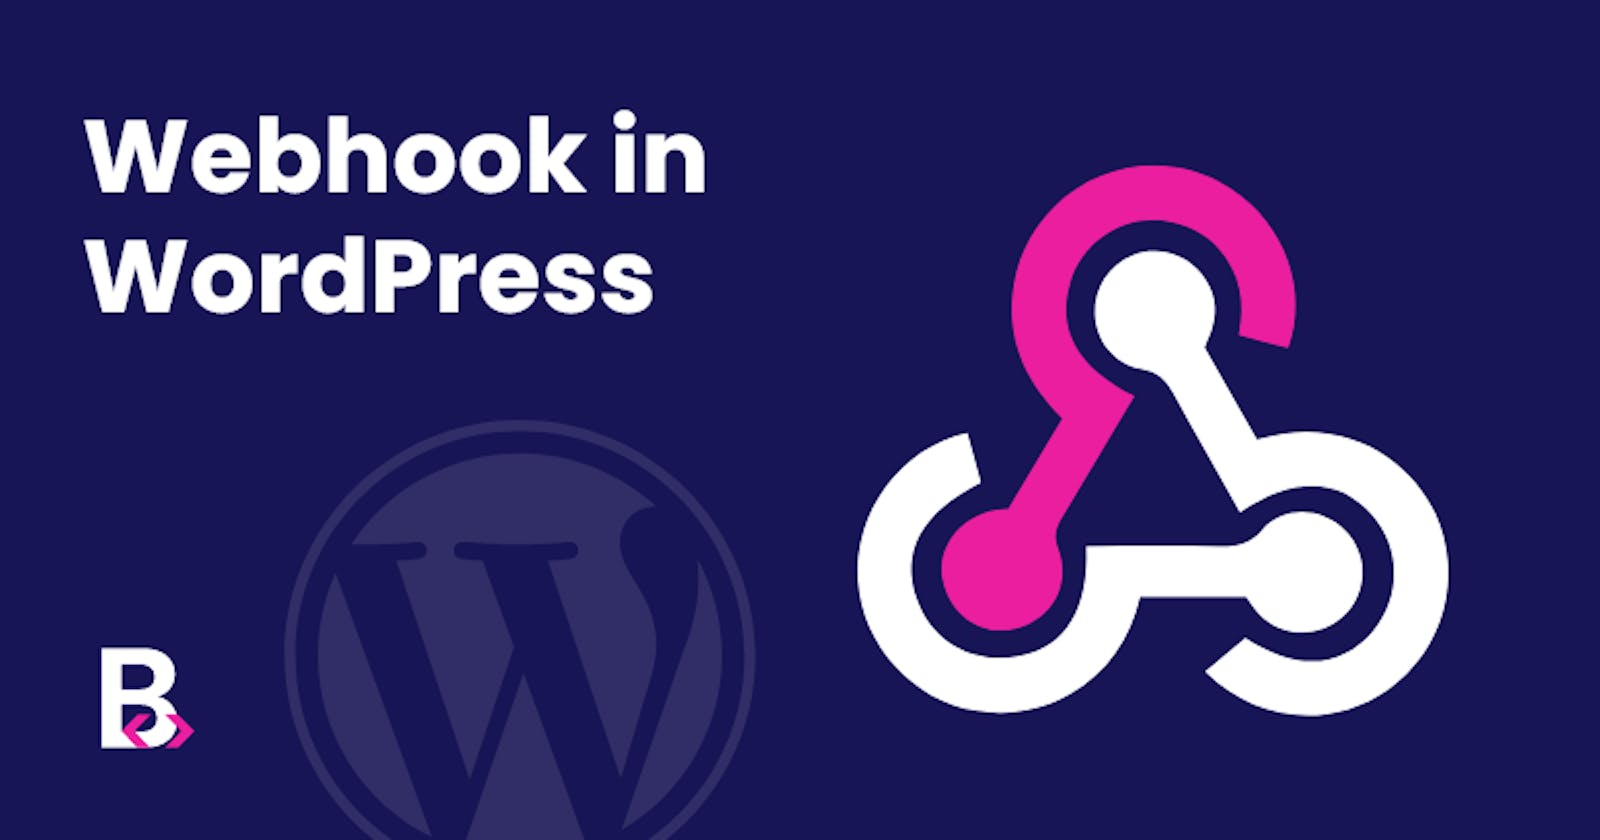 Creating a custom webhook in WordPress to get data from third part services